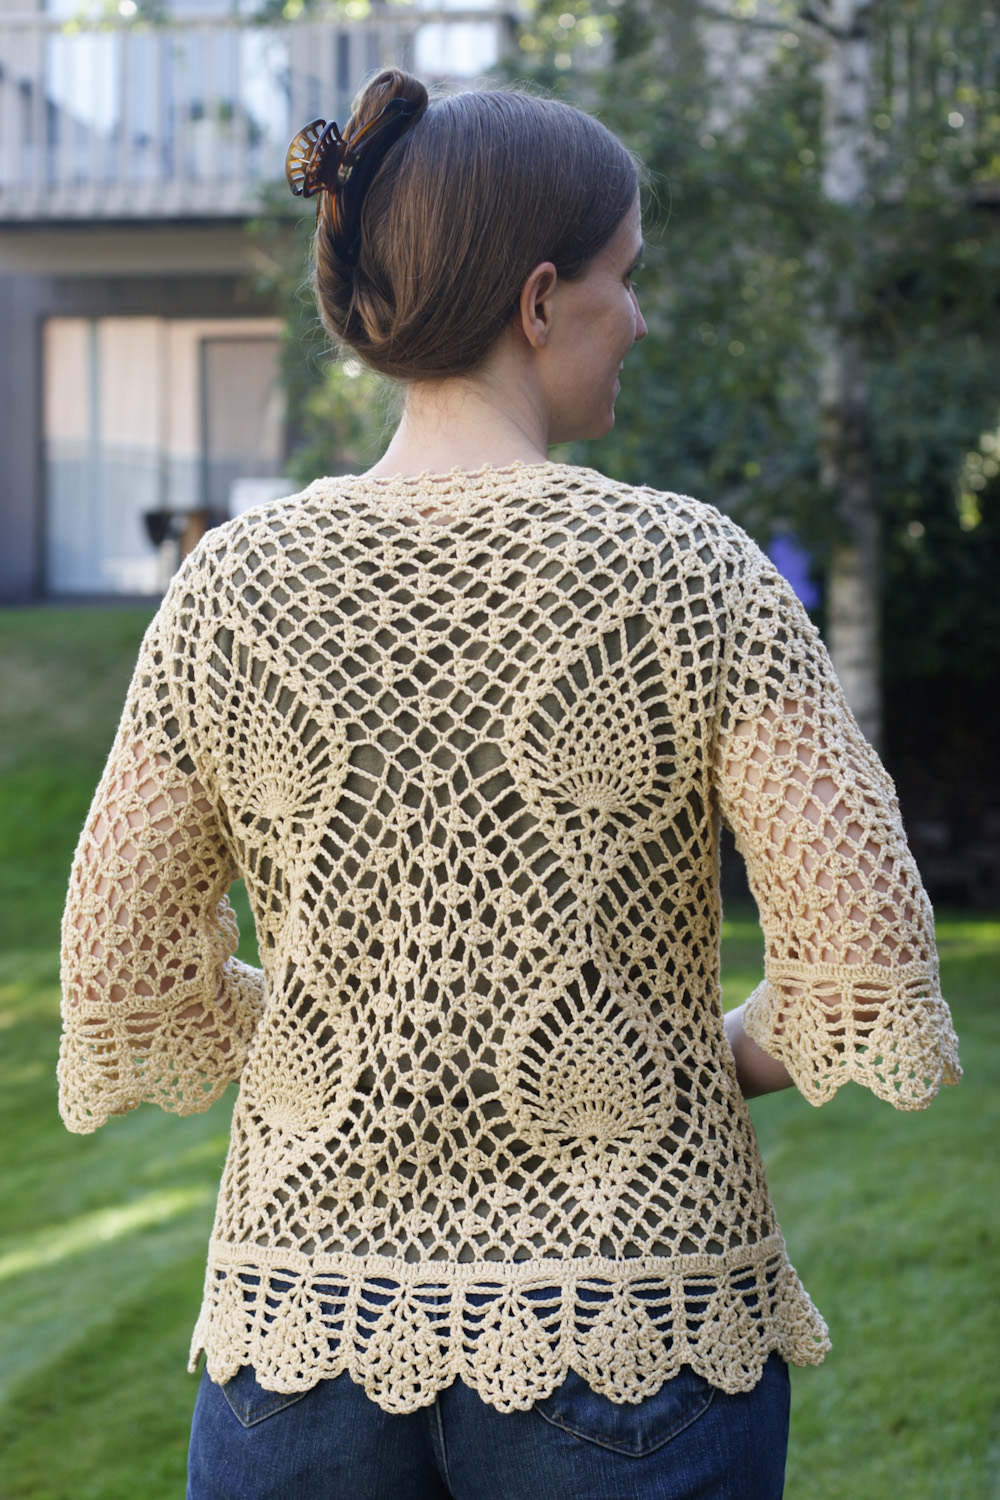 Crochet Patterns Sweater : Free Patterns to Crochet - Crochet Sweater Patterns - Yarn Stores